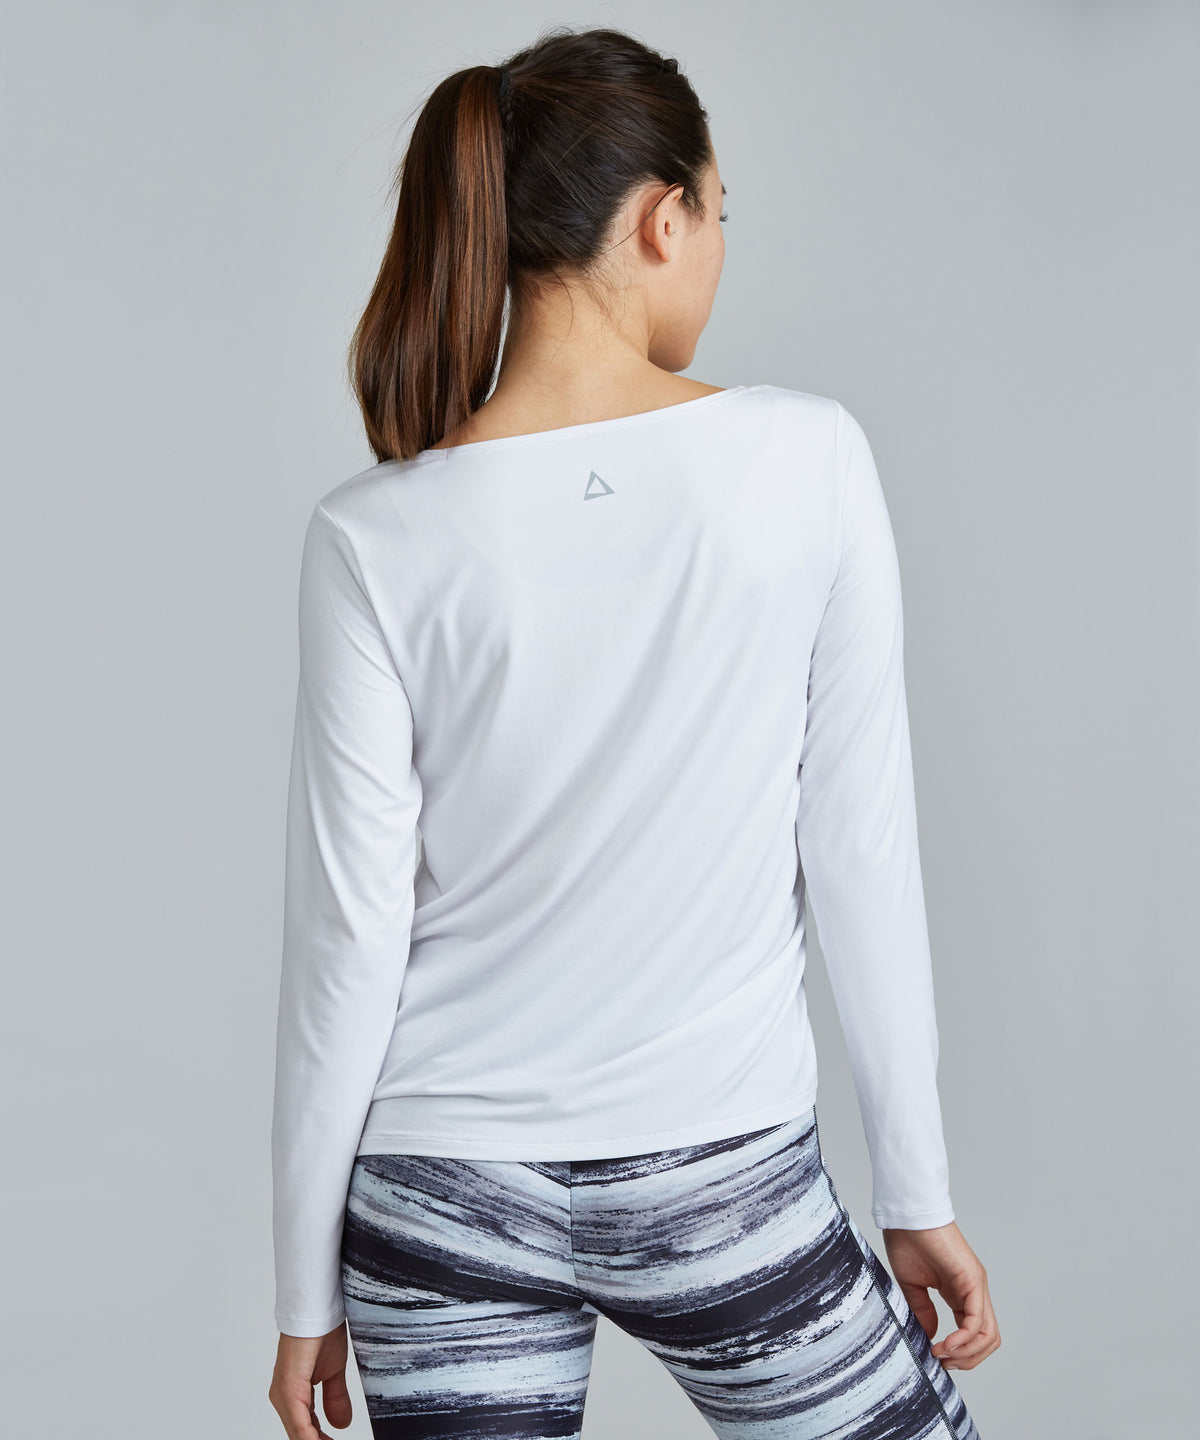 Joan Top - White White Joan Top - Women's Activewear Long Sleeve Top by PRISMSPORT